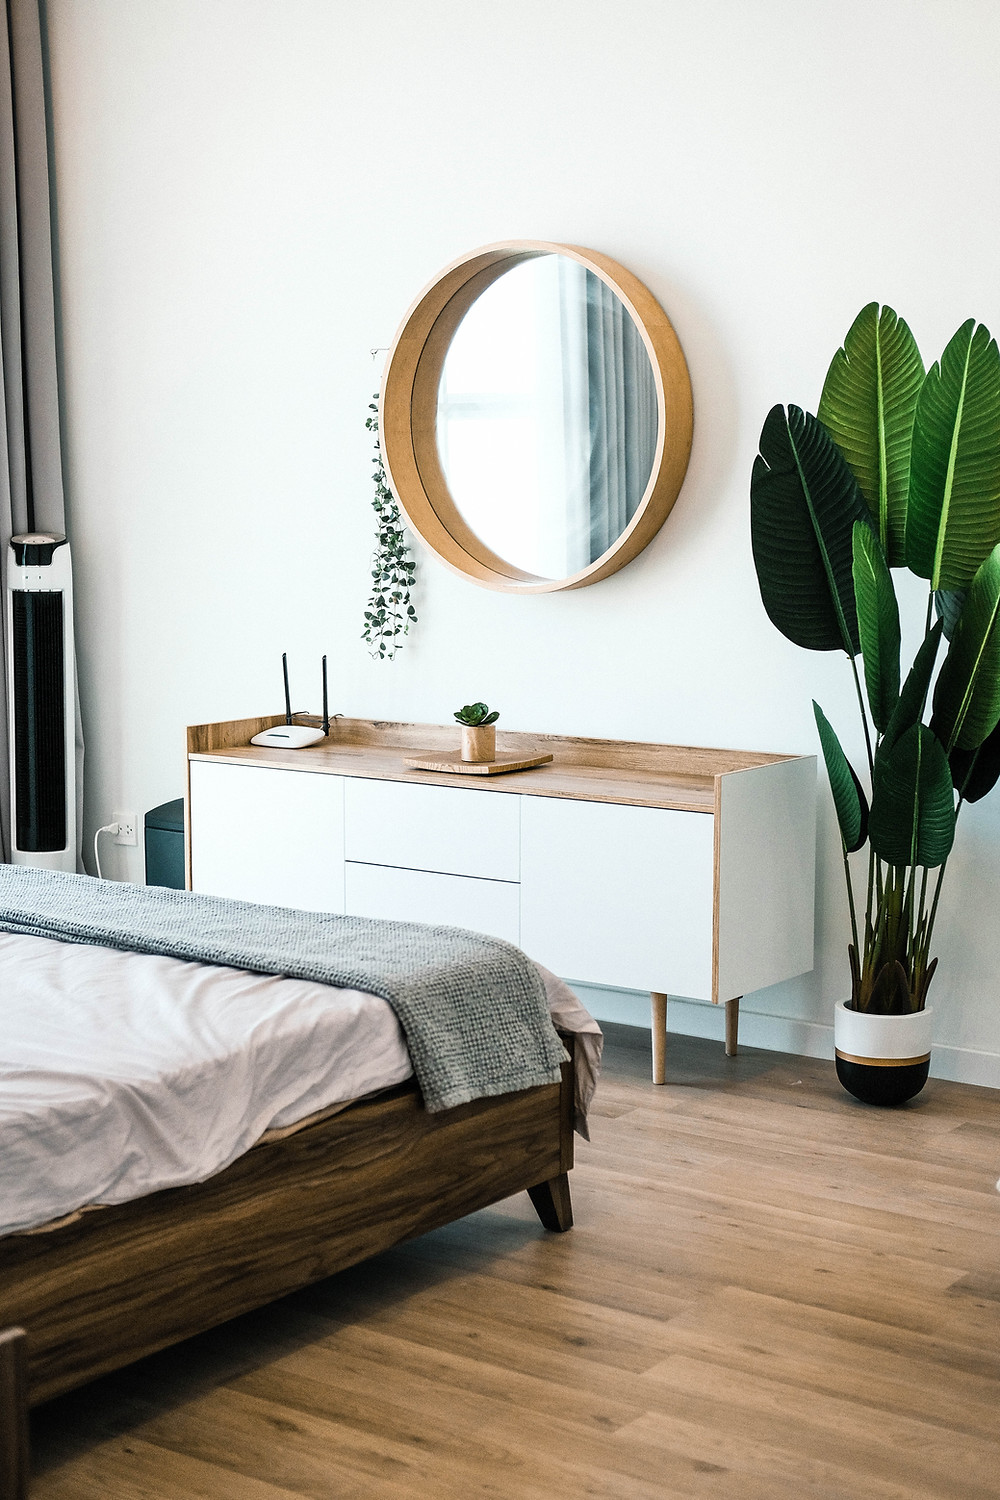 A neat bedroom with natural wood floors and a wooden bedframe. Neutral colours with a large banana leaf plant, A dresser stands tidily with a large round mirror above it.